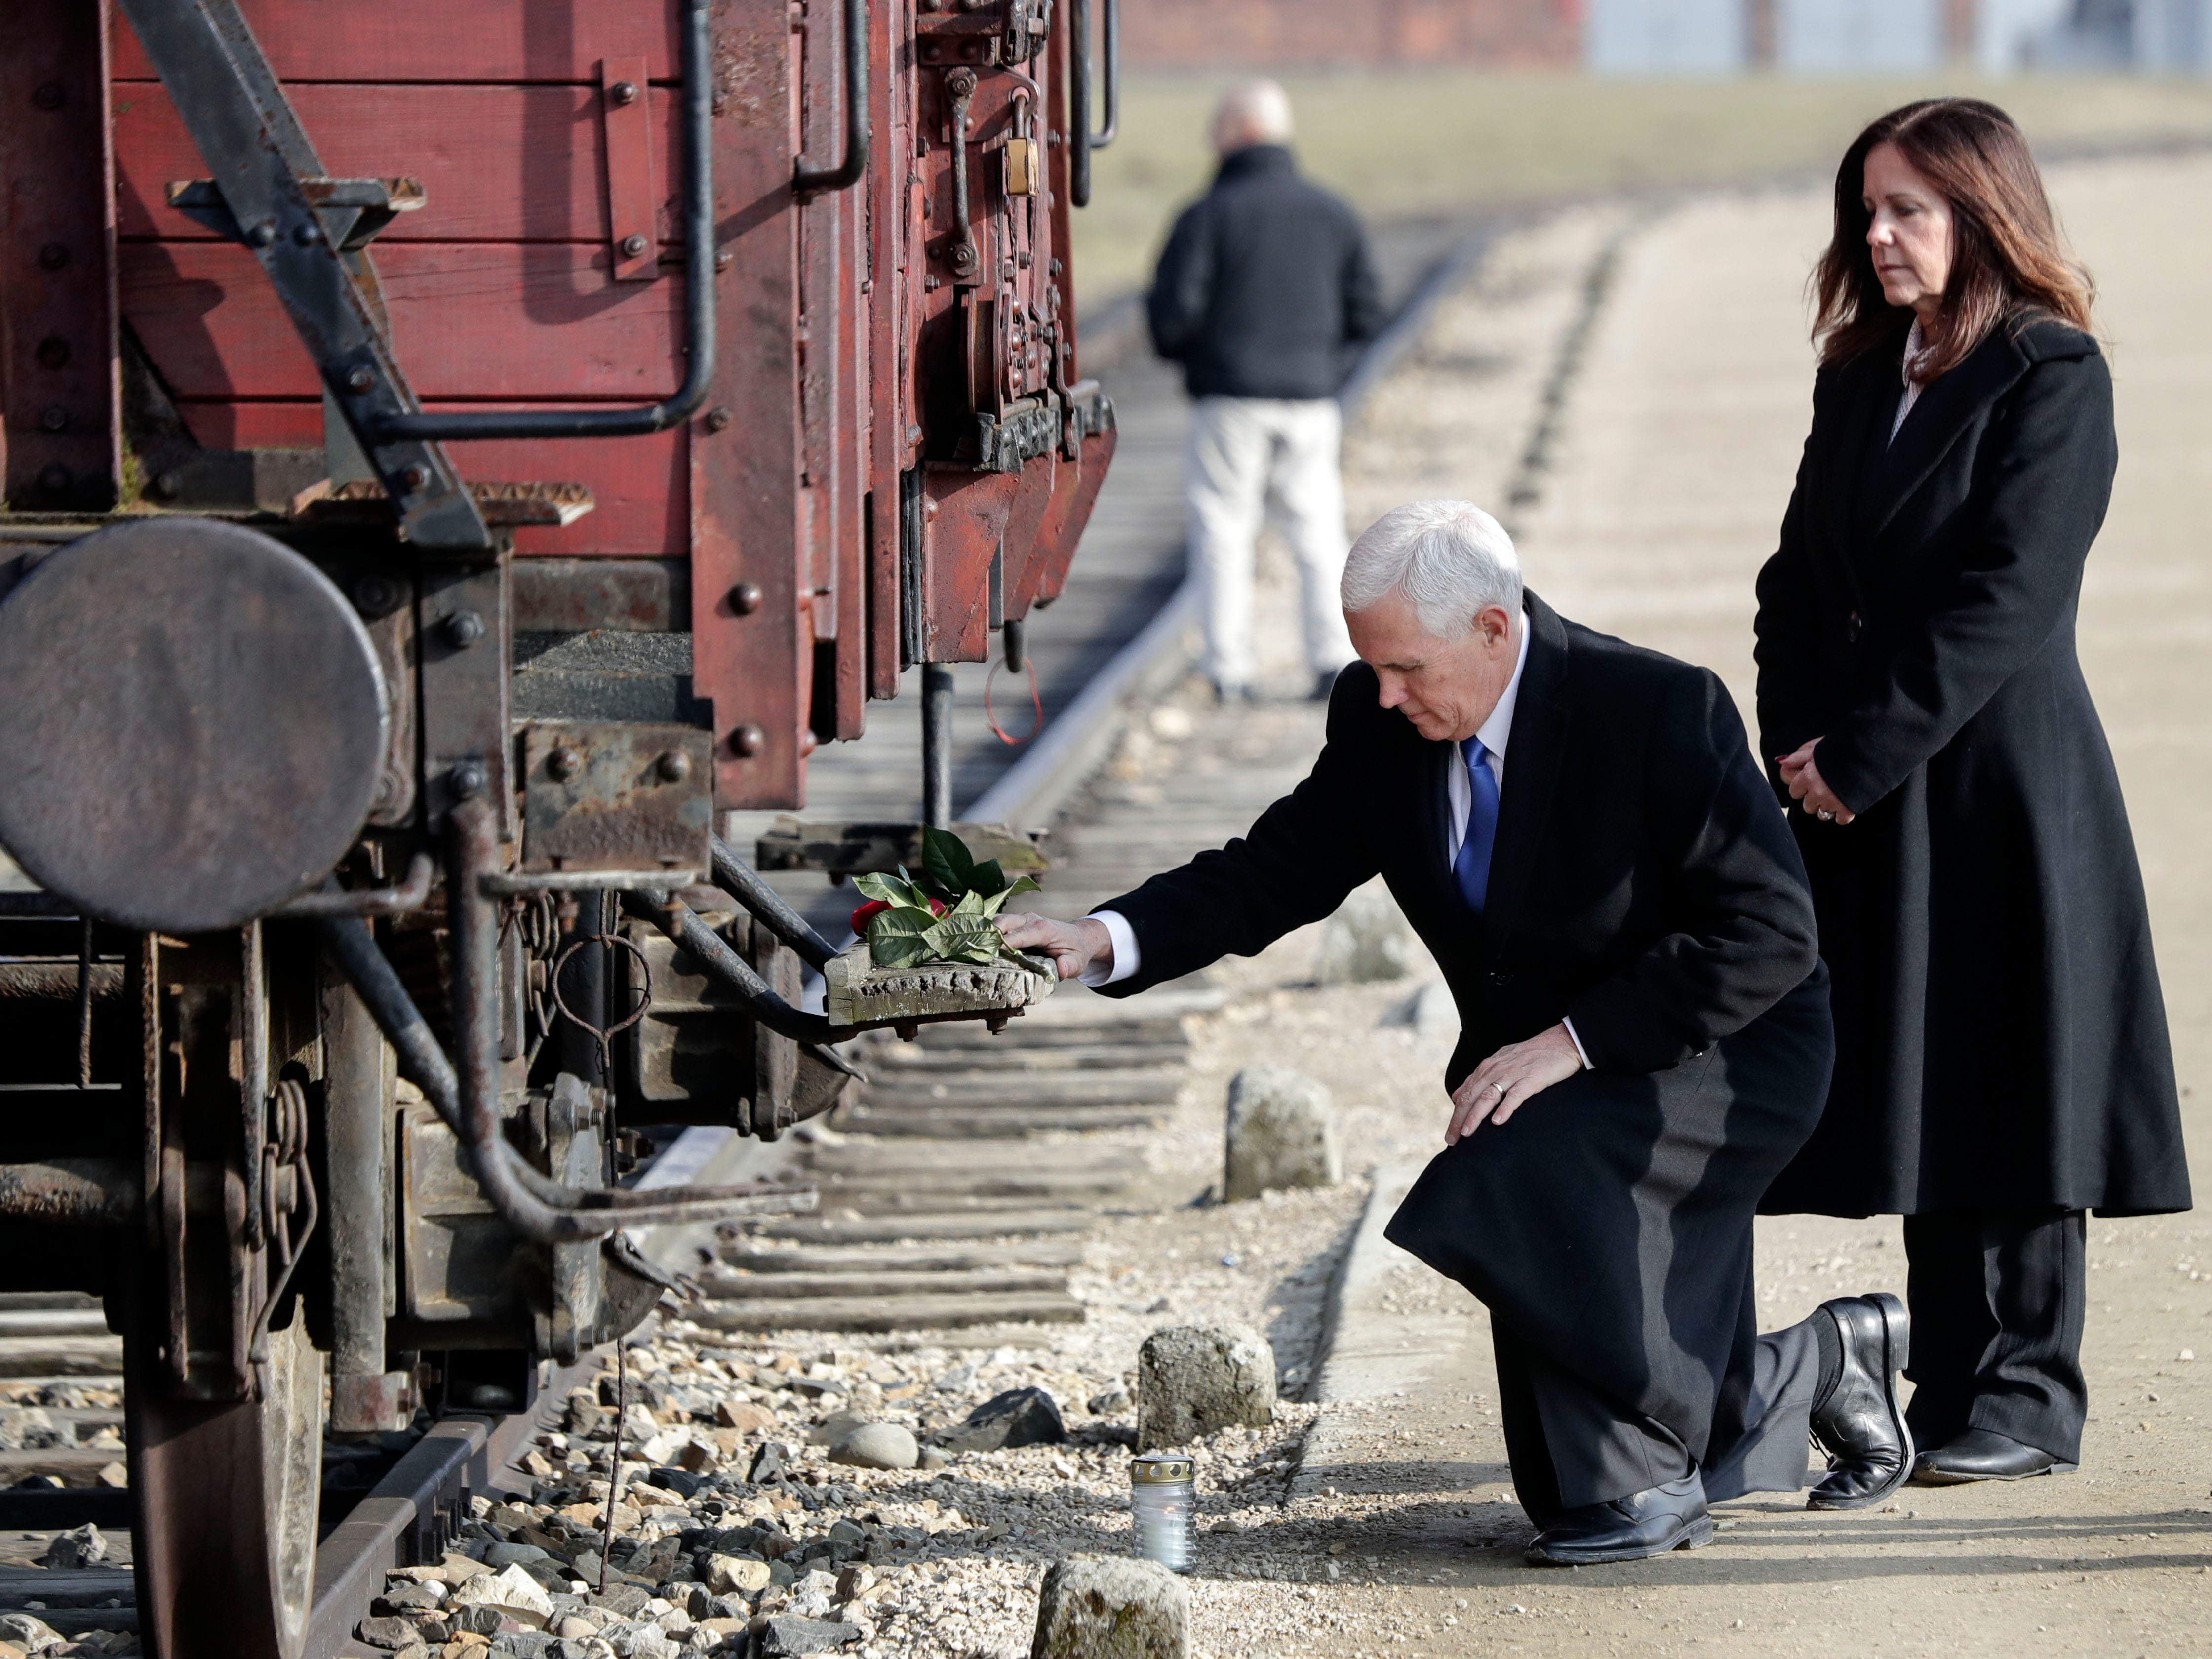 United States Vice President Mike Pence kneels beside his wife Karen, right, at a historic freight car during their visit to the former Nazi concentration camp Auschwitz-Birkenau in Oswiecim, Poland, Friday, Feb. 15, 2019. The freight car was used to transport Jews to the death camp.